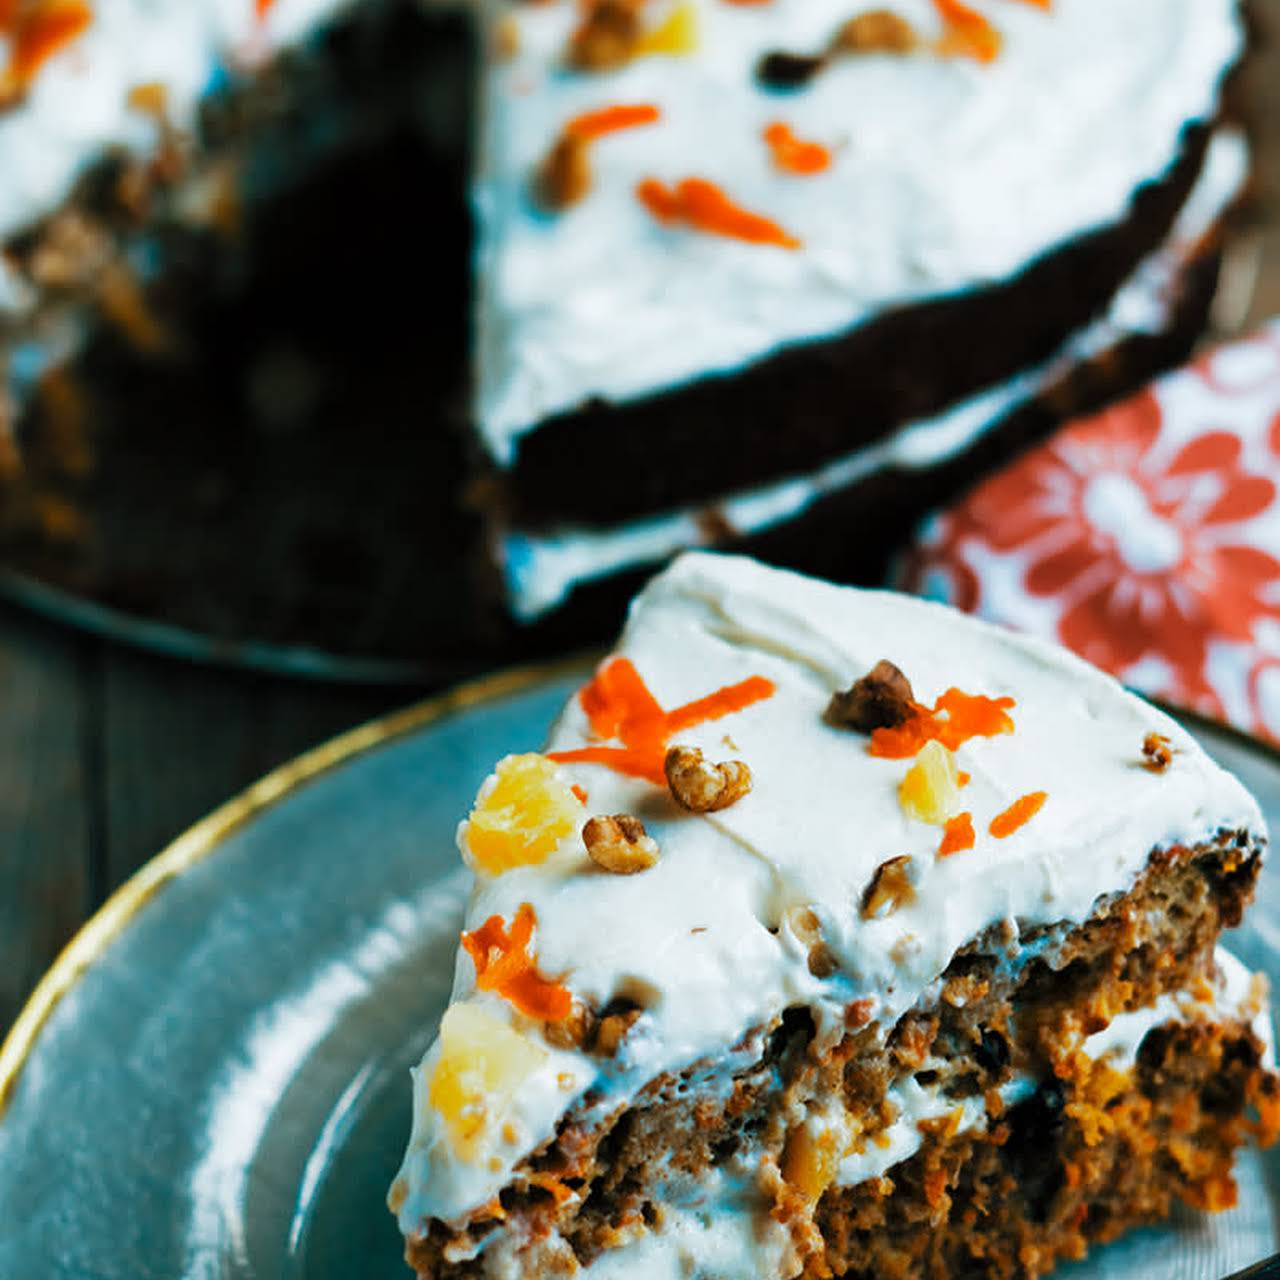 10 Best Carrot Cake with Walnuts and Pineapple Recipes | Yummly